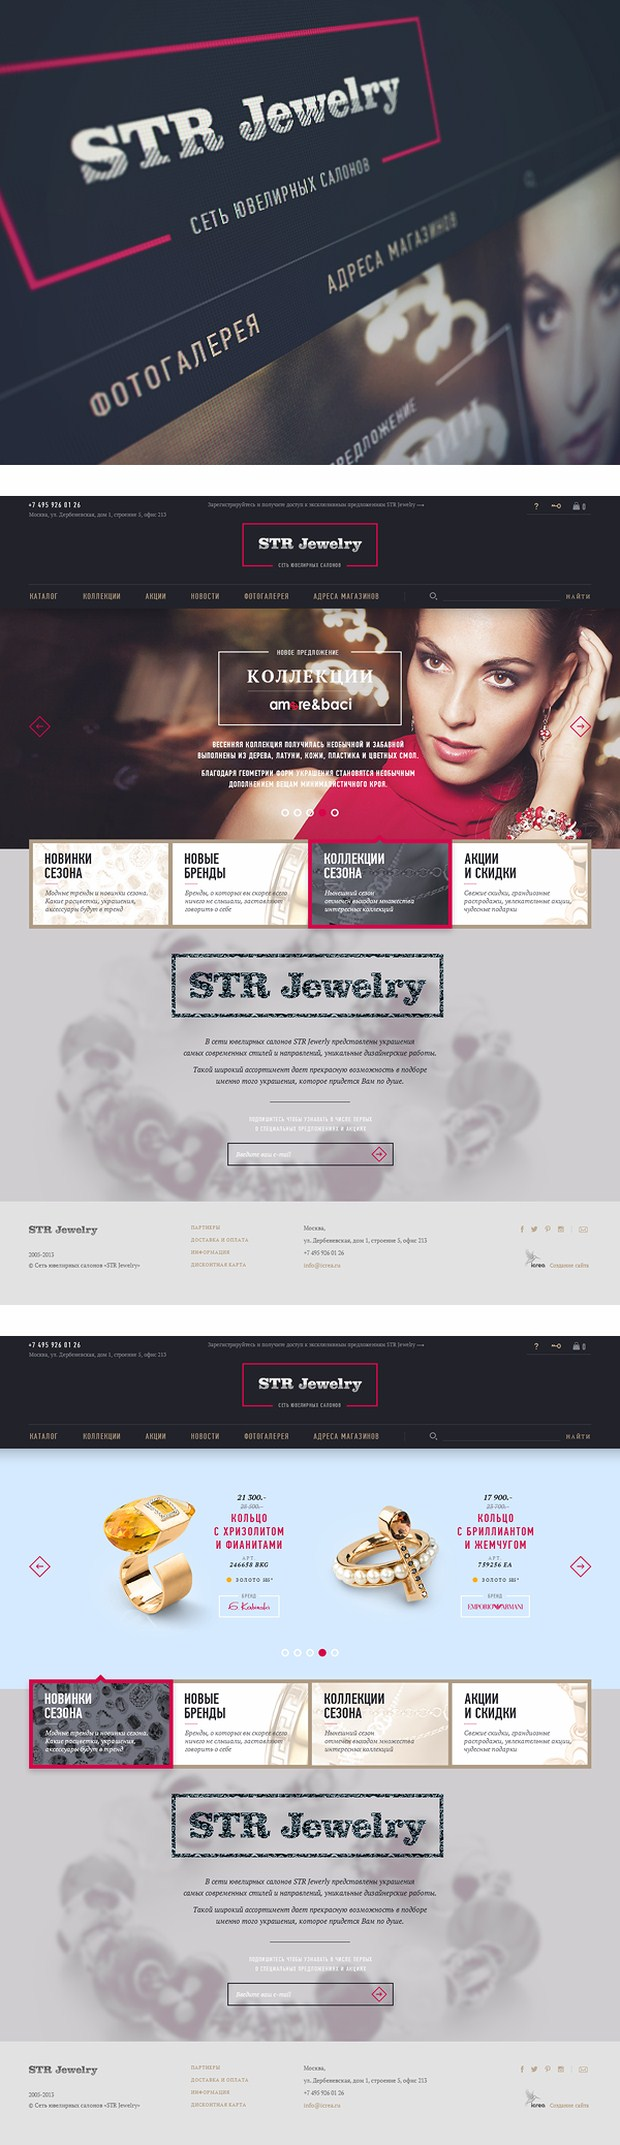 STR Jewelry web design inspiration